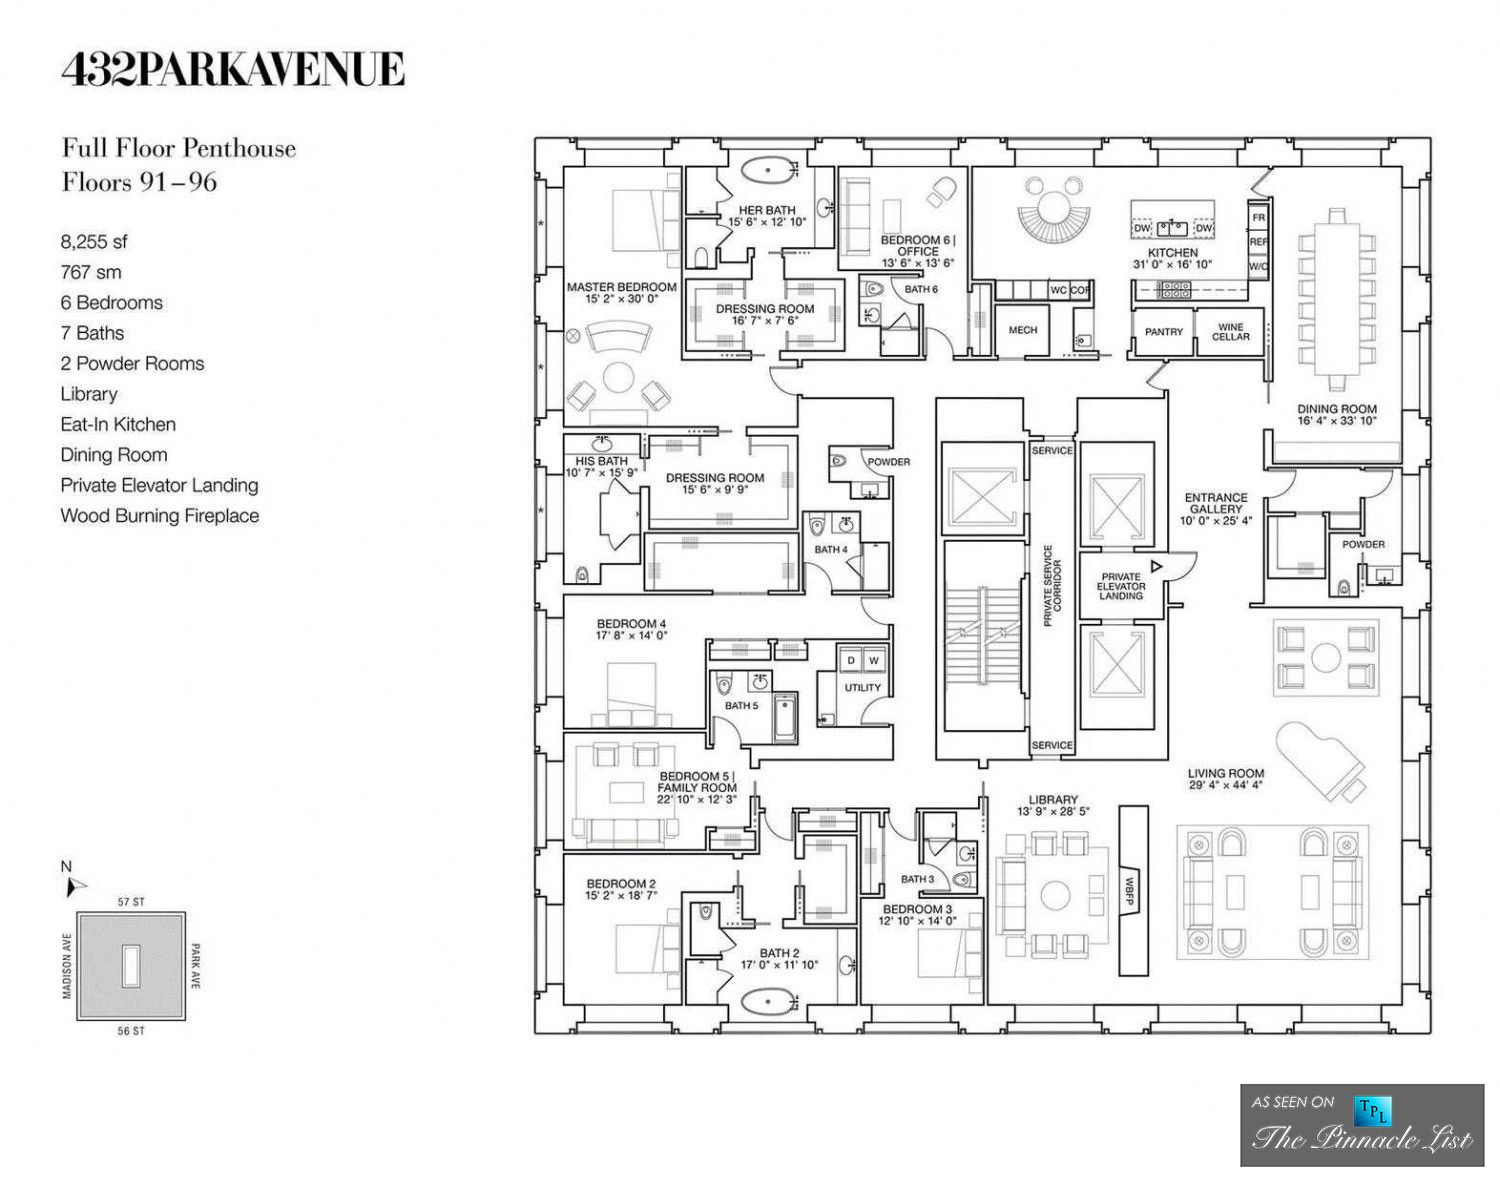 Luxury penthouse floor plan ph92 432 park avenue new for New york house plans